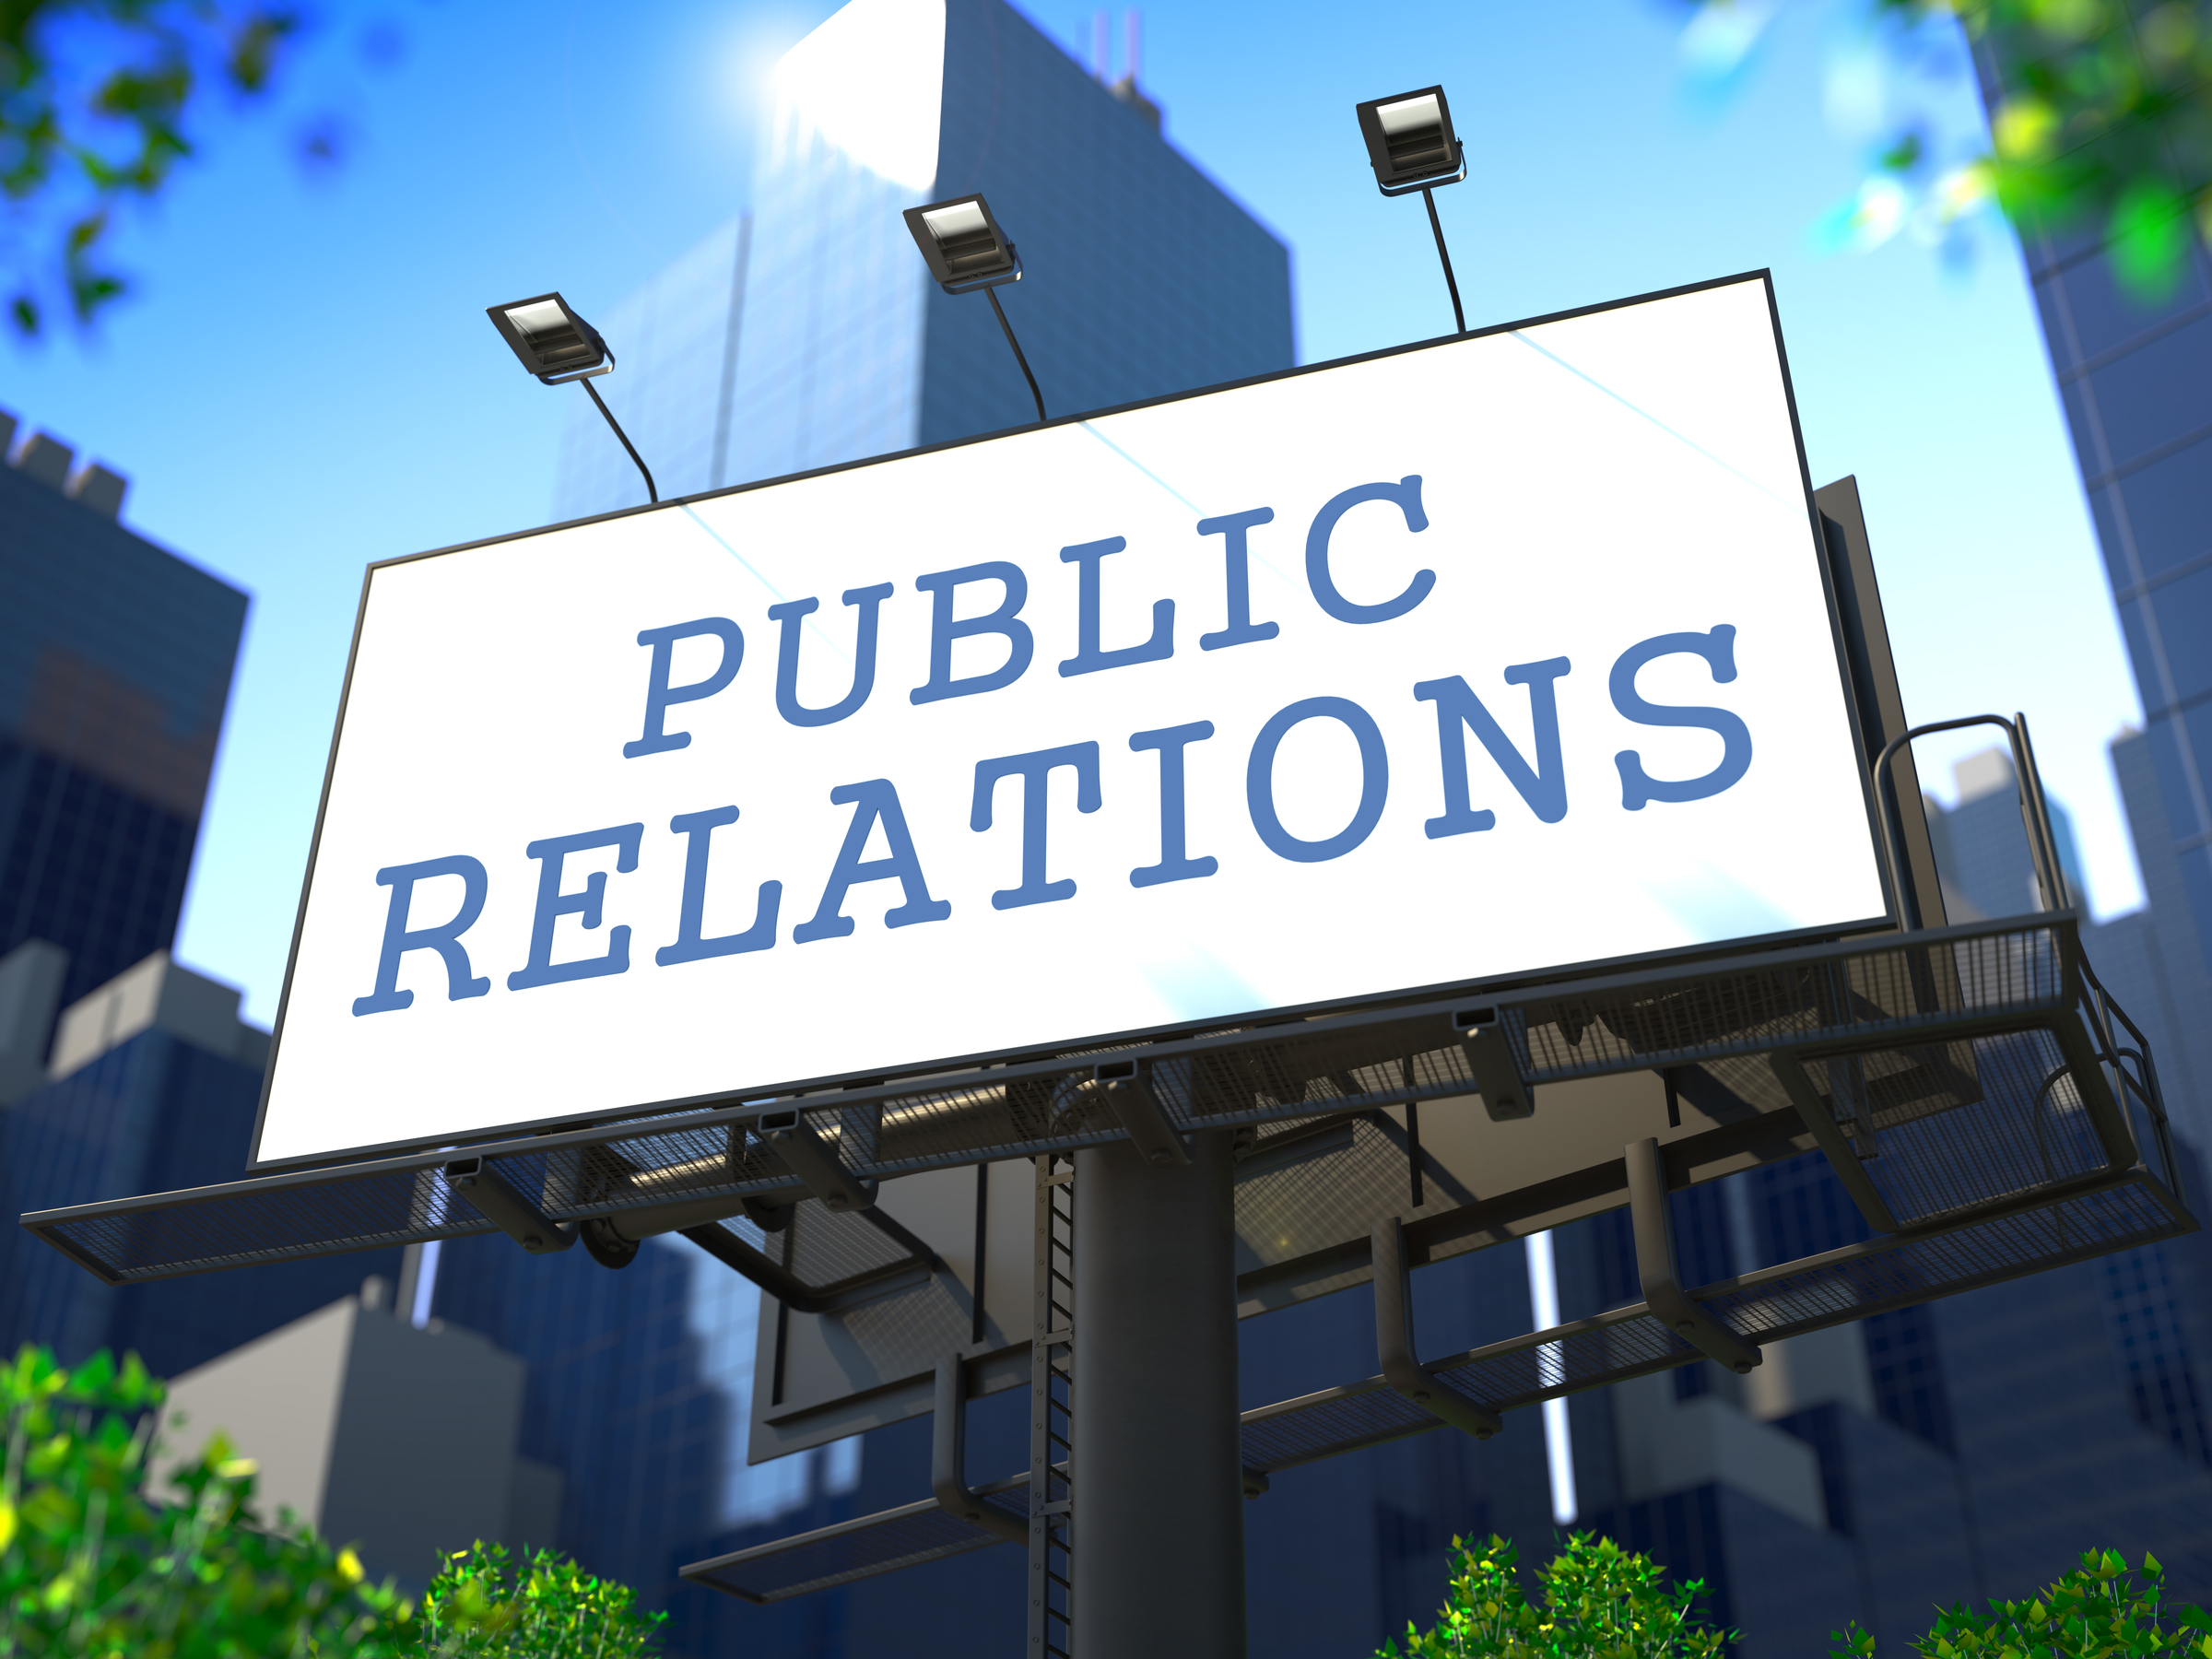 Getting your business PR ready